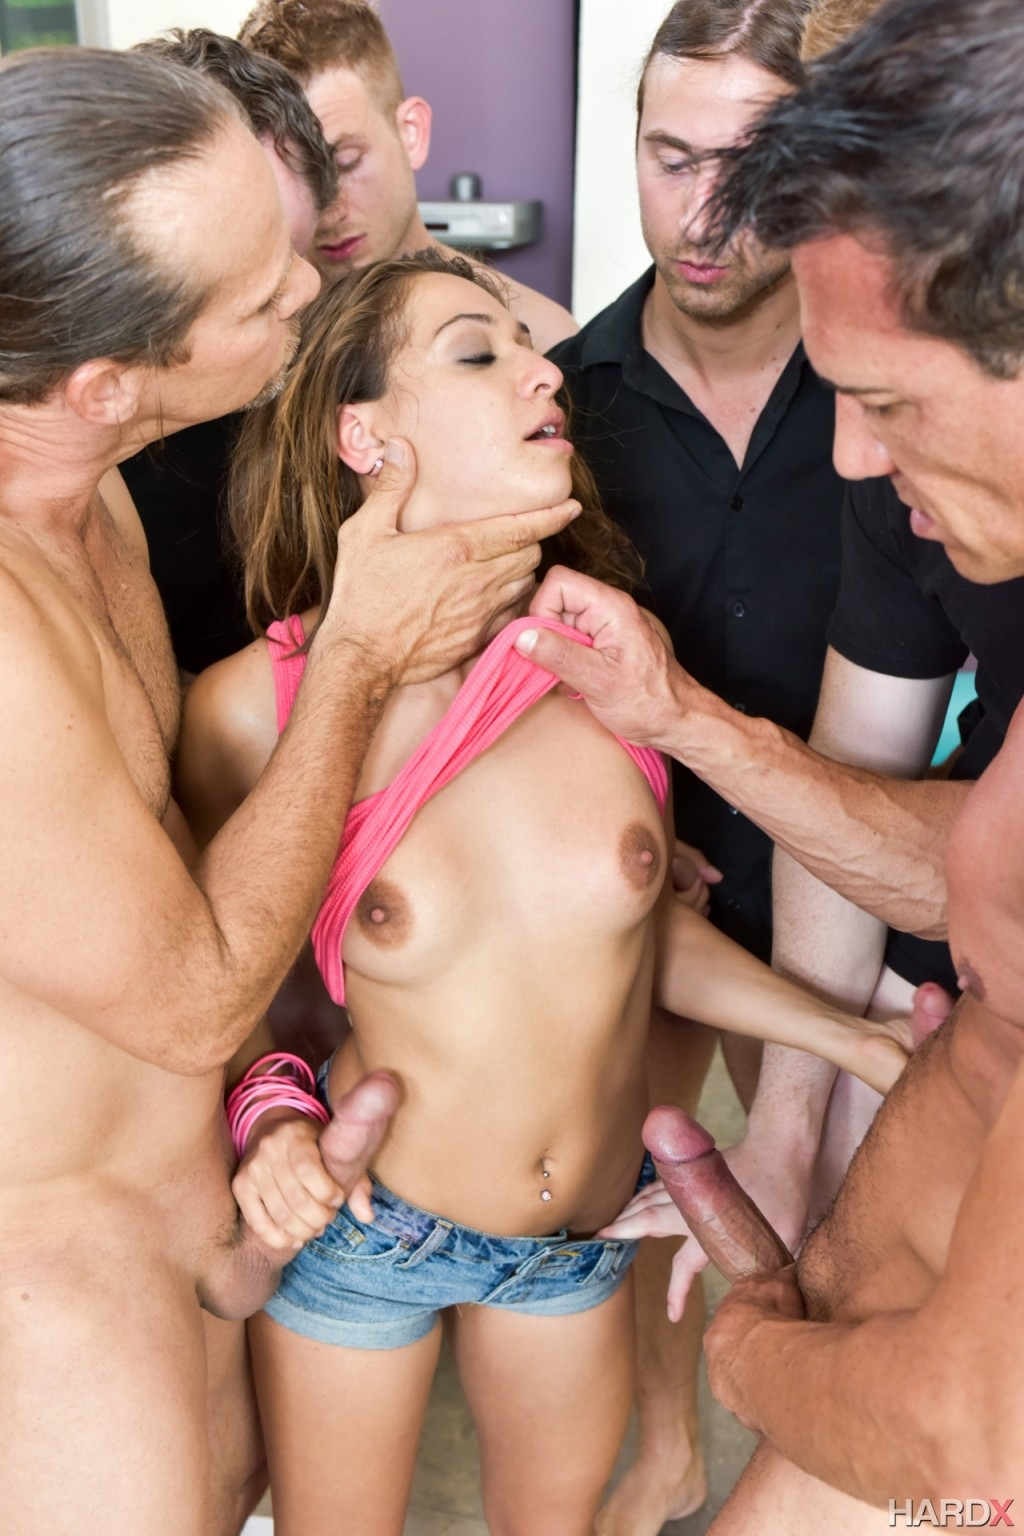 Blowjob gangbang bukkake latina accept. opinion